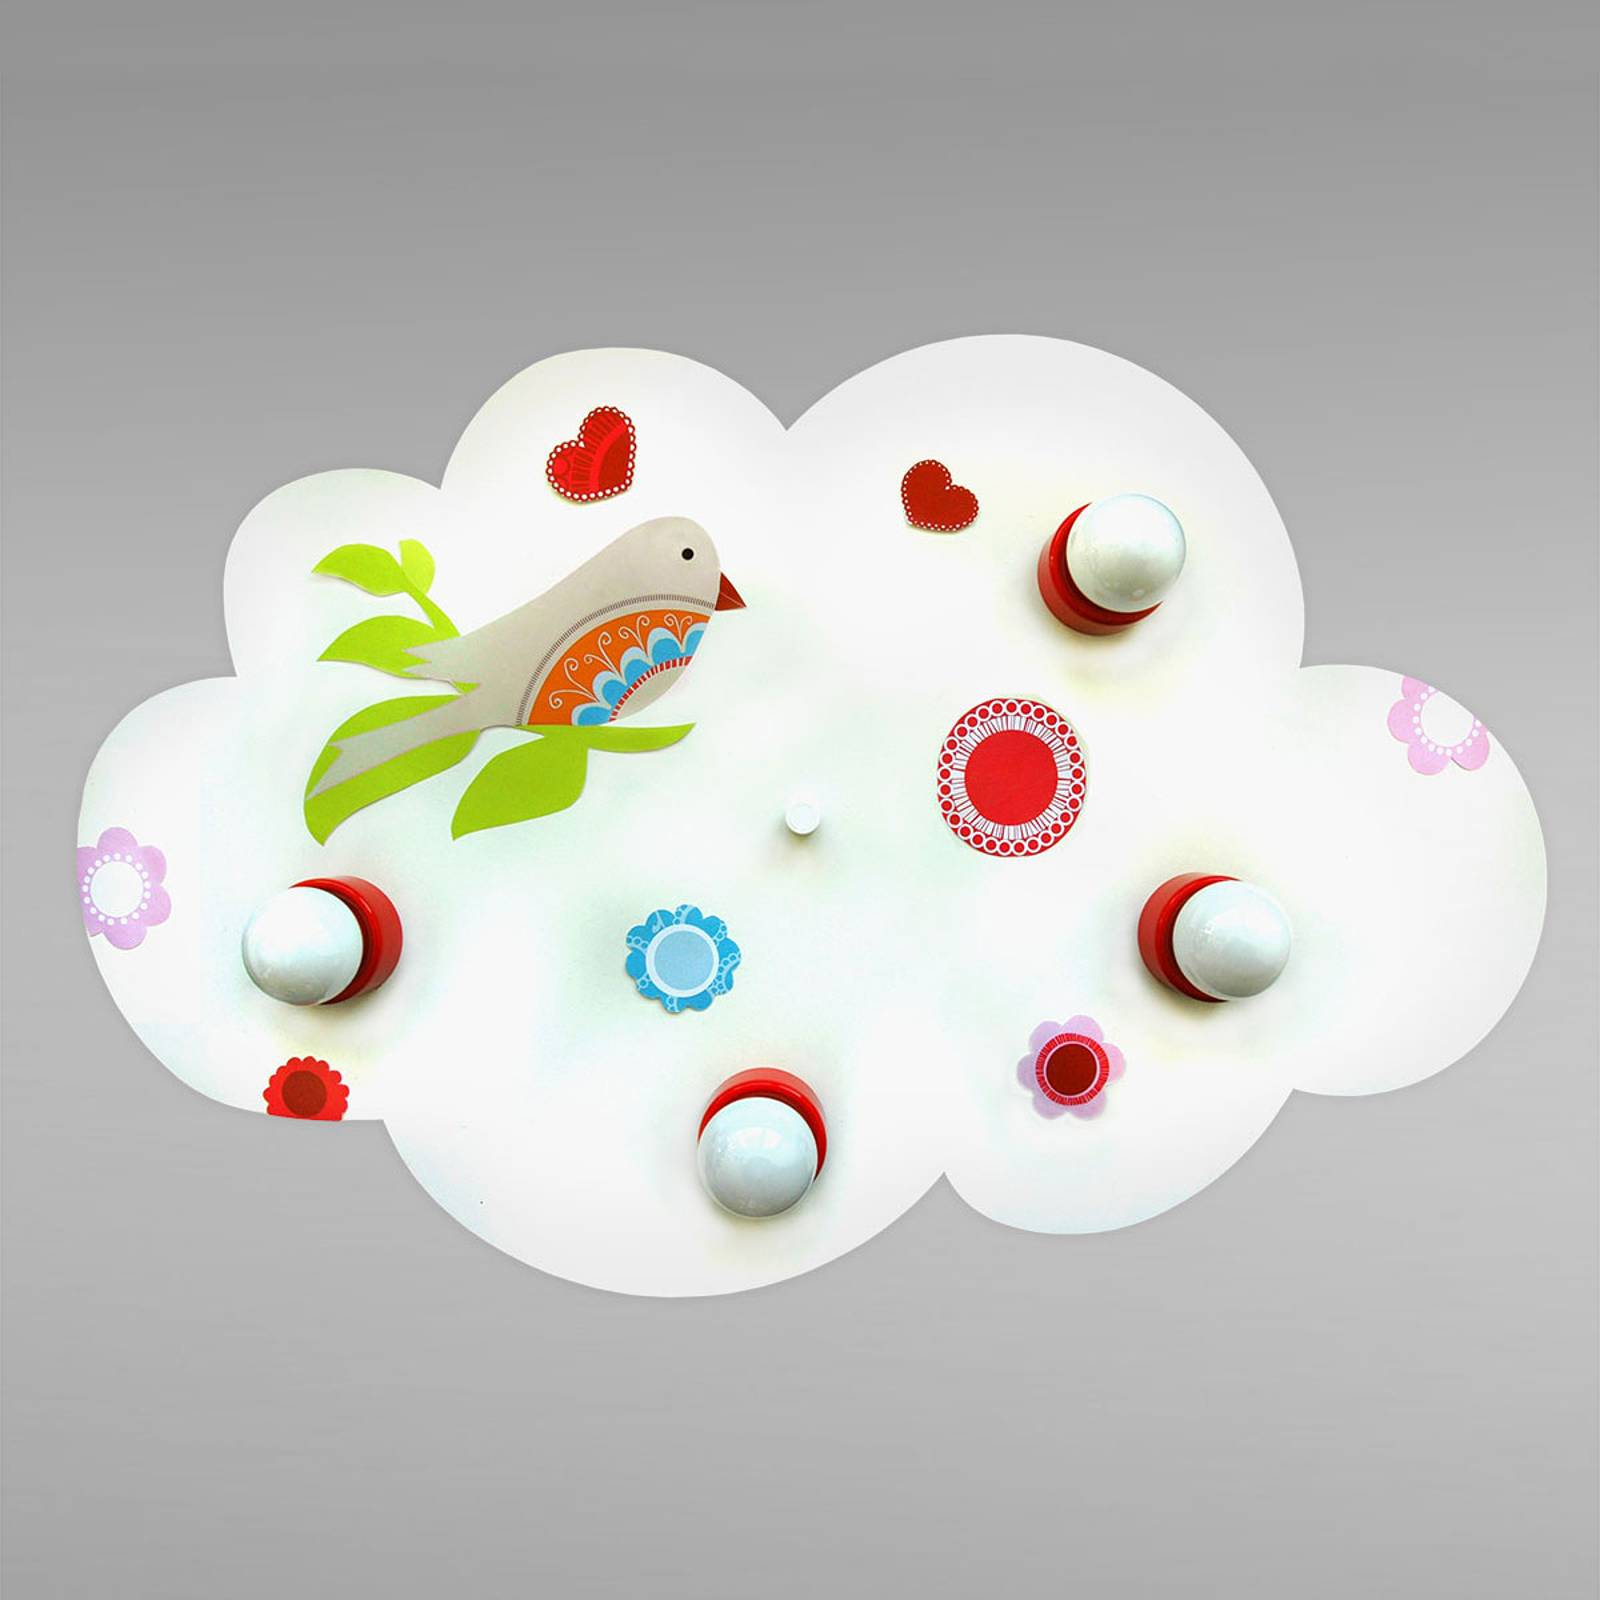 Enchanting Cloud bird of paradise ceiling light from Waldi-Leuchten